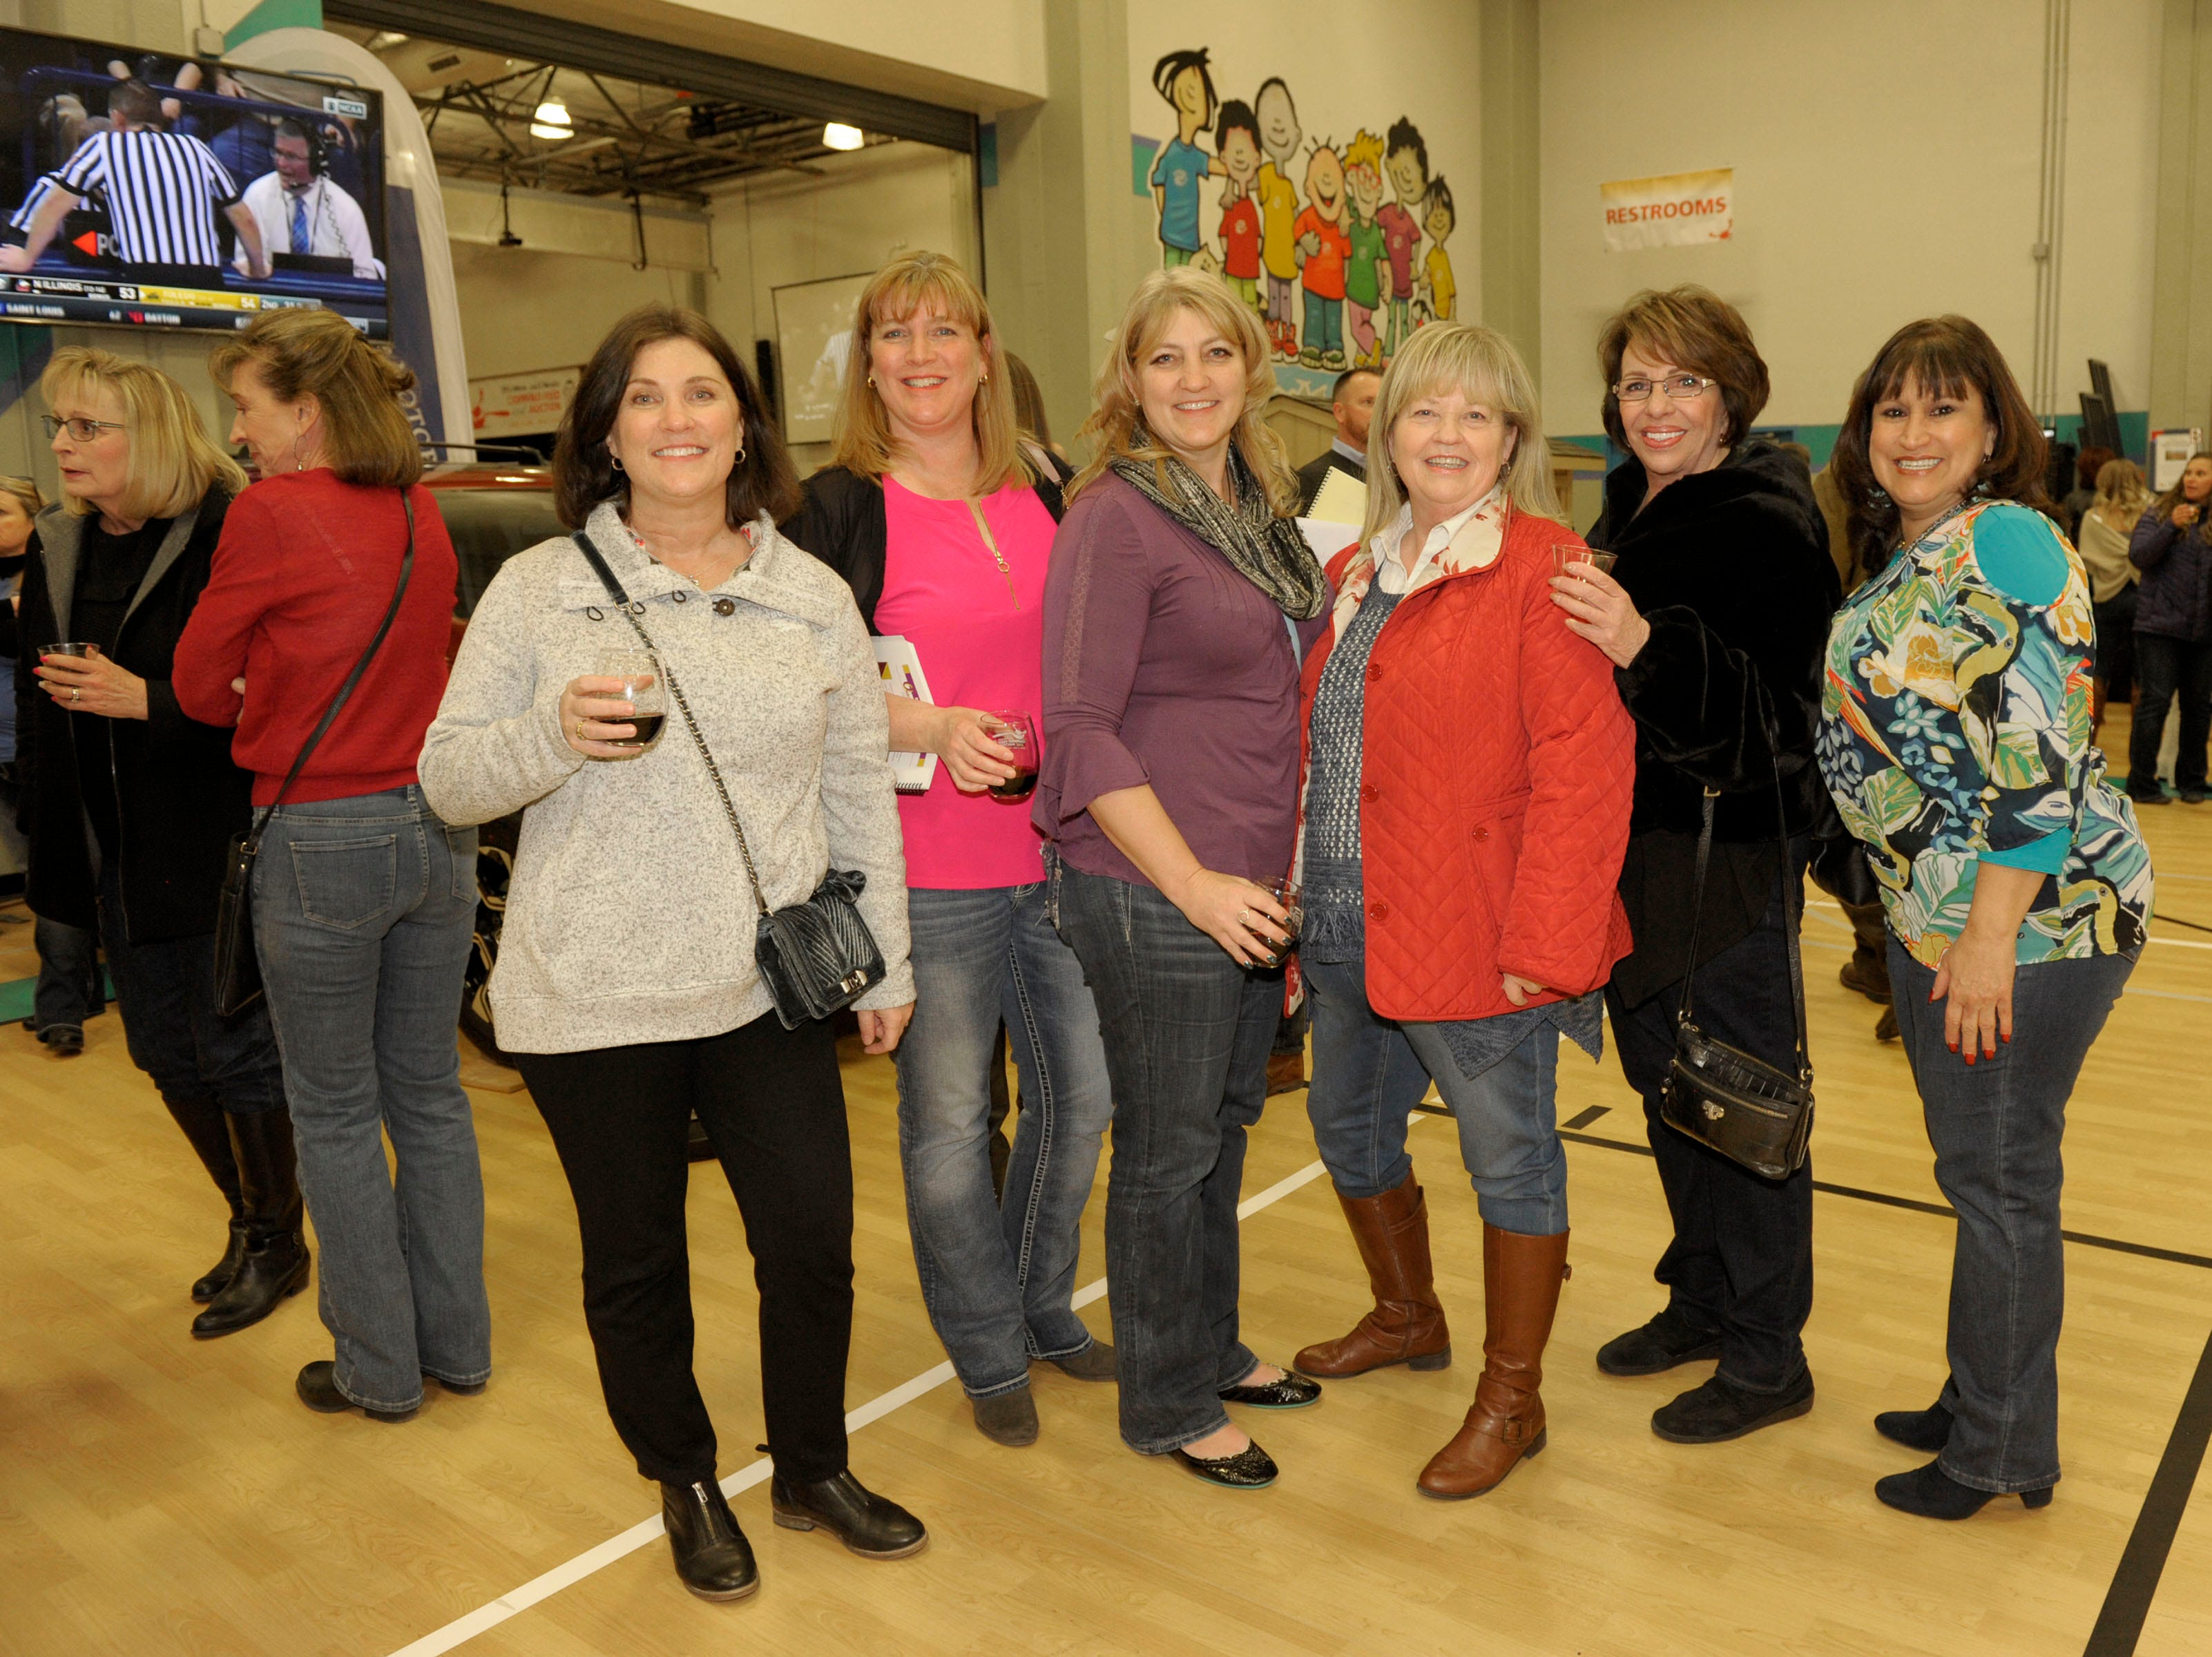 Michele Montoya, Angela Flora, Teresa McKee, Cheryl Smith, Sandee Smith and Claudia Saavedra attend the 39th Annual Jack T. Reviglio Cioppino Feed and Auction at the Boys & Girls Club of Truckee Meadows Sat., Feb. 23, 2019. Photos by Lisa J. Tolda/Special to the RGJ.